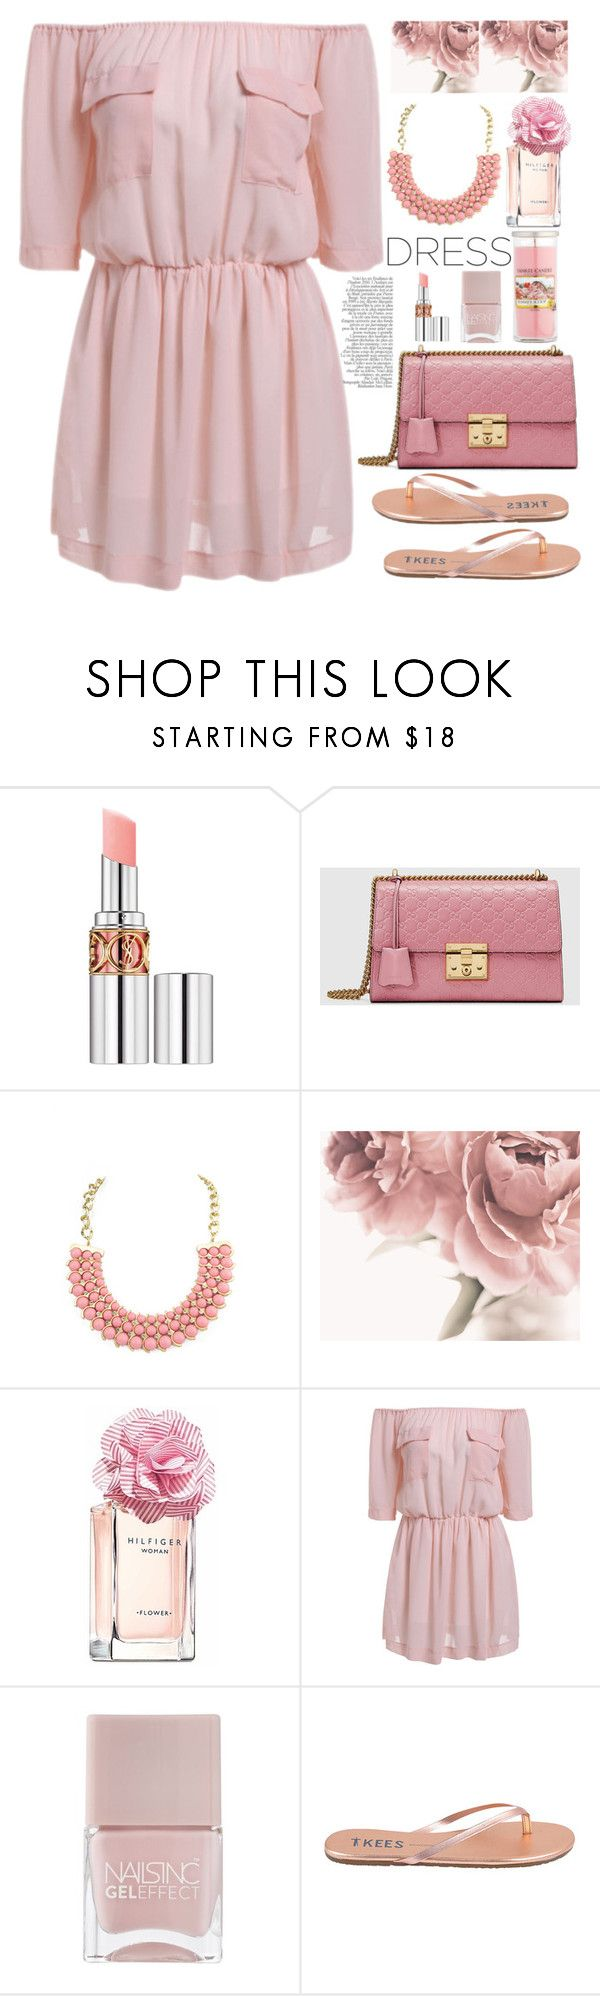 """""""romantic dress"""" by licethfashion ❤ liked on Polyvore featuring Yves Saint Laurent, Gucci, Emi Jewellery, Tommy Hilfiger, Nails Inc., Tkees, Yankee Candle, polyvoreditorial and licethfashion"""